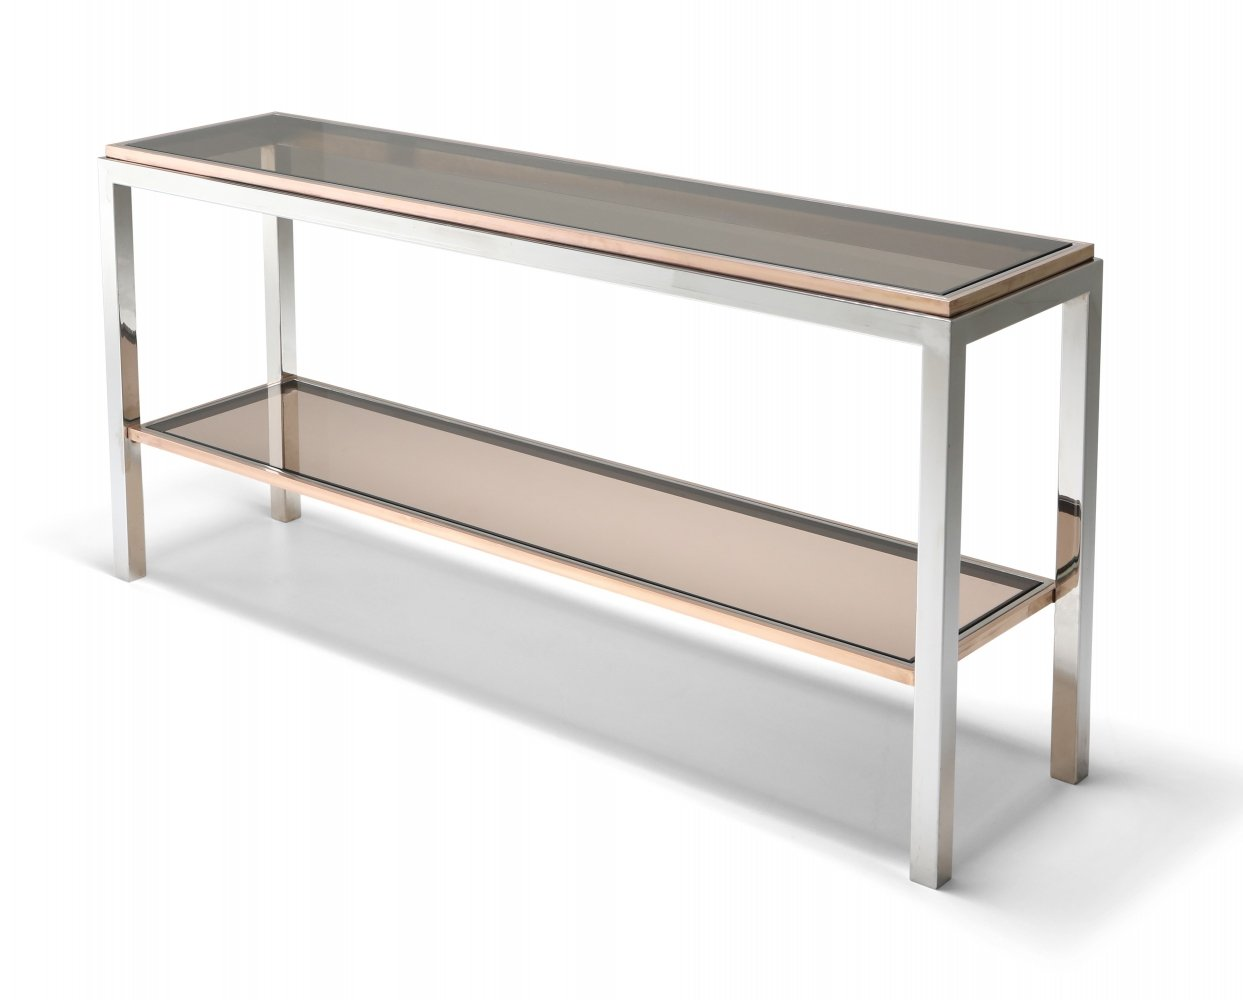 Willy Rizzo Two-Tier Console Table in Chrome & Brass Linea Flaminia